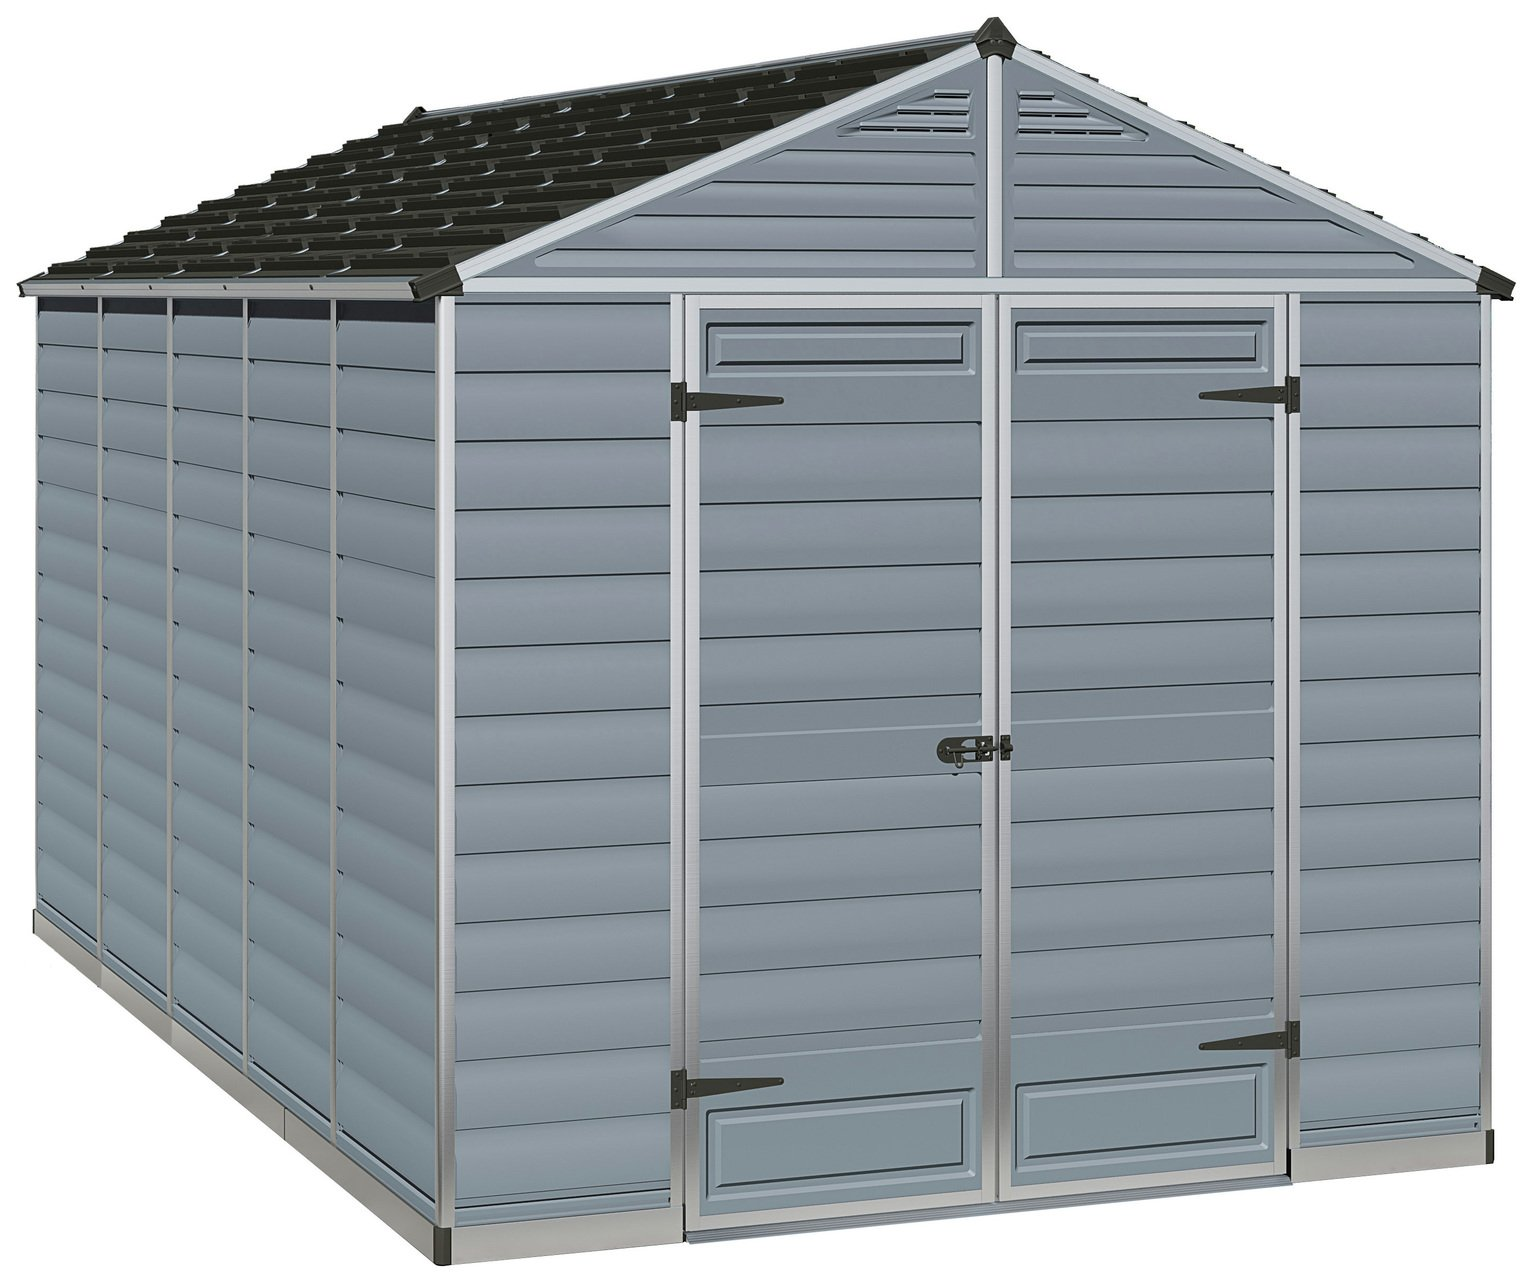 Palram Skylight Plastic 8 x 12ft Shed - Dark Grey Best Price, Cheapest Prices